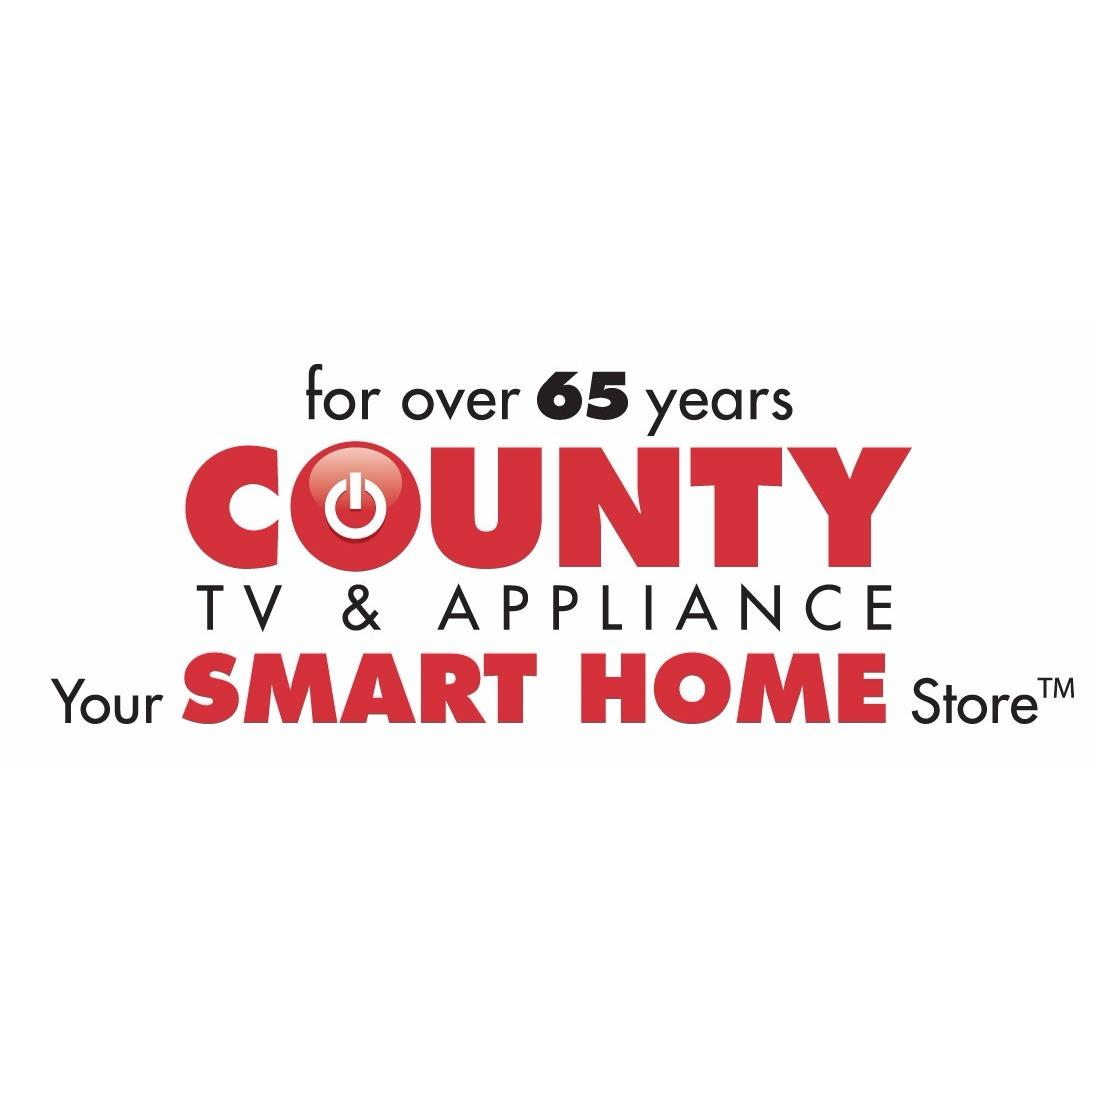 County TV & Appliance - Stamford, CT - Appliance Stores